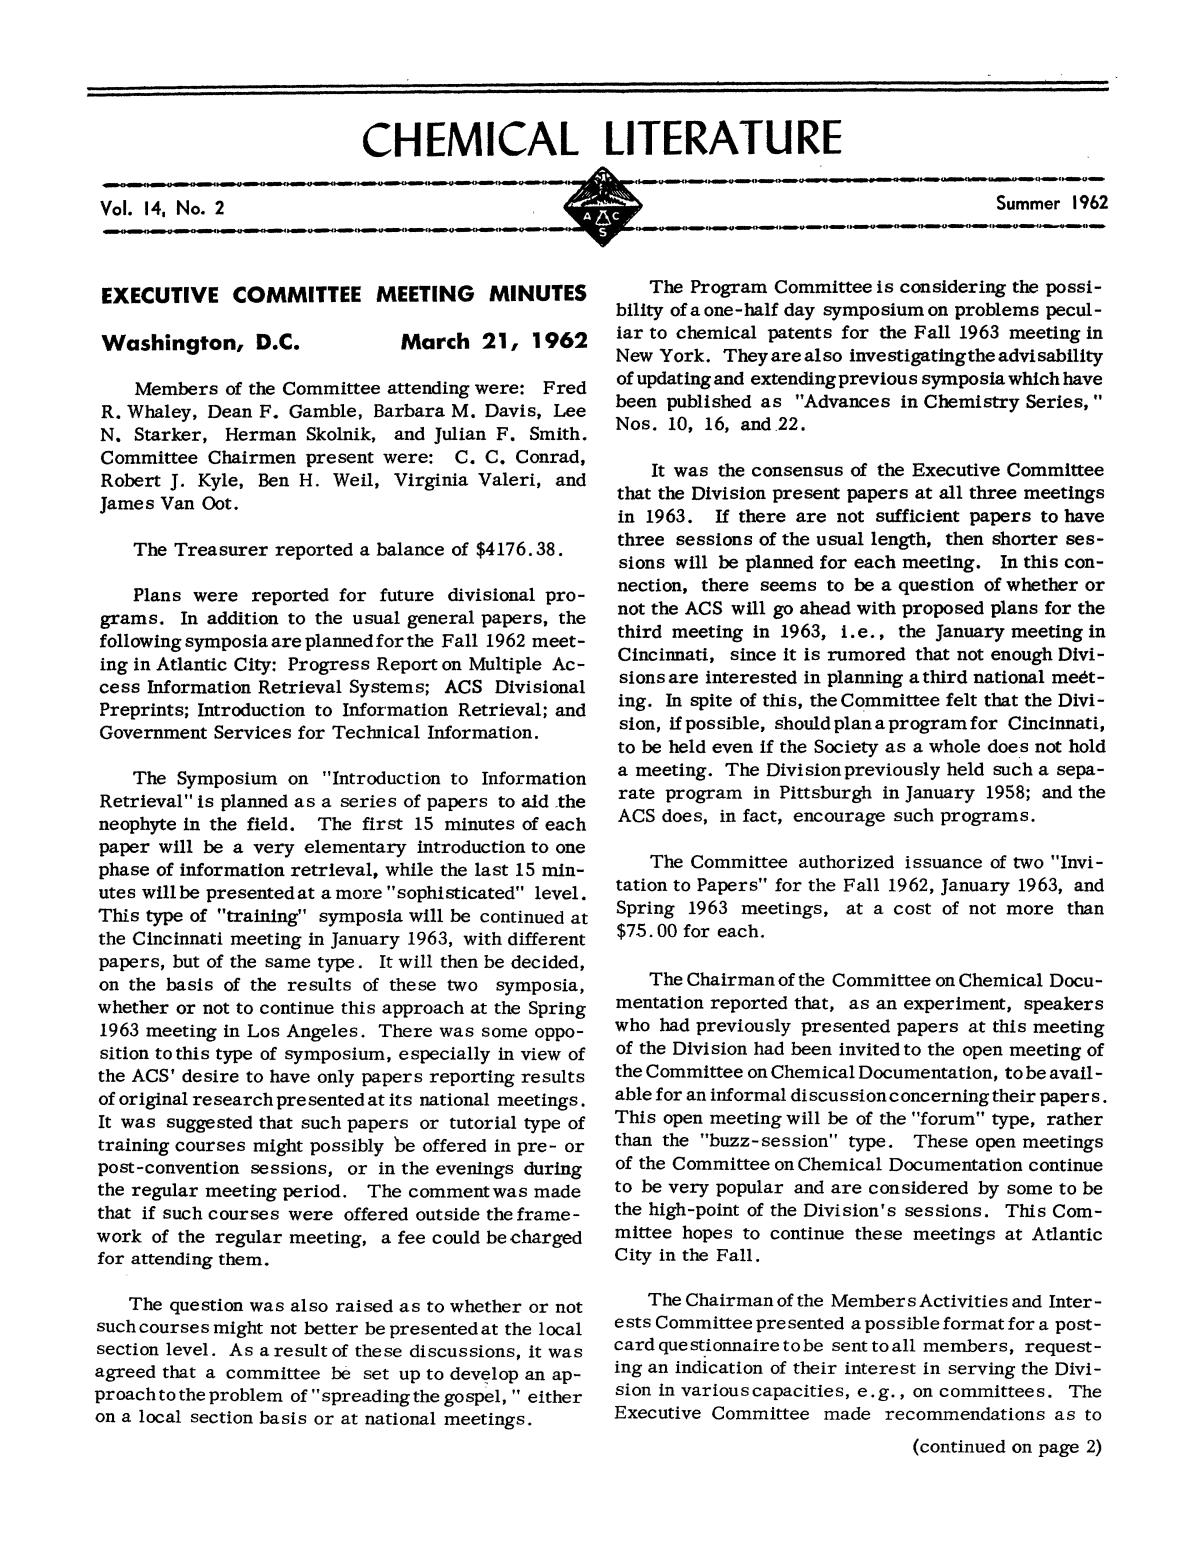 Chemical Literature, Volume 14, Number 2, Summer 1962                                                                                                      1